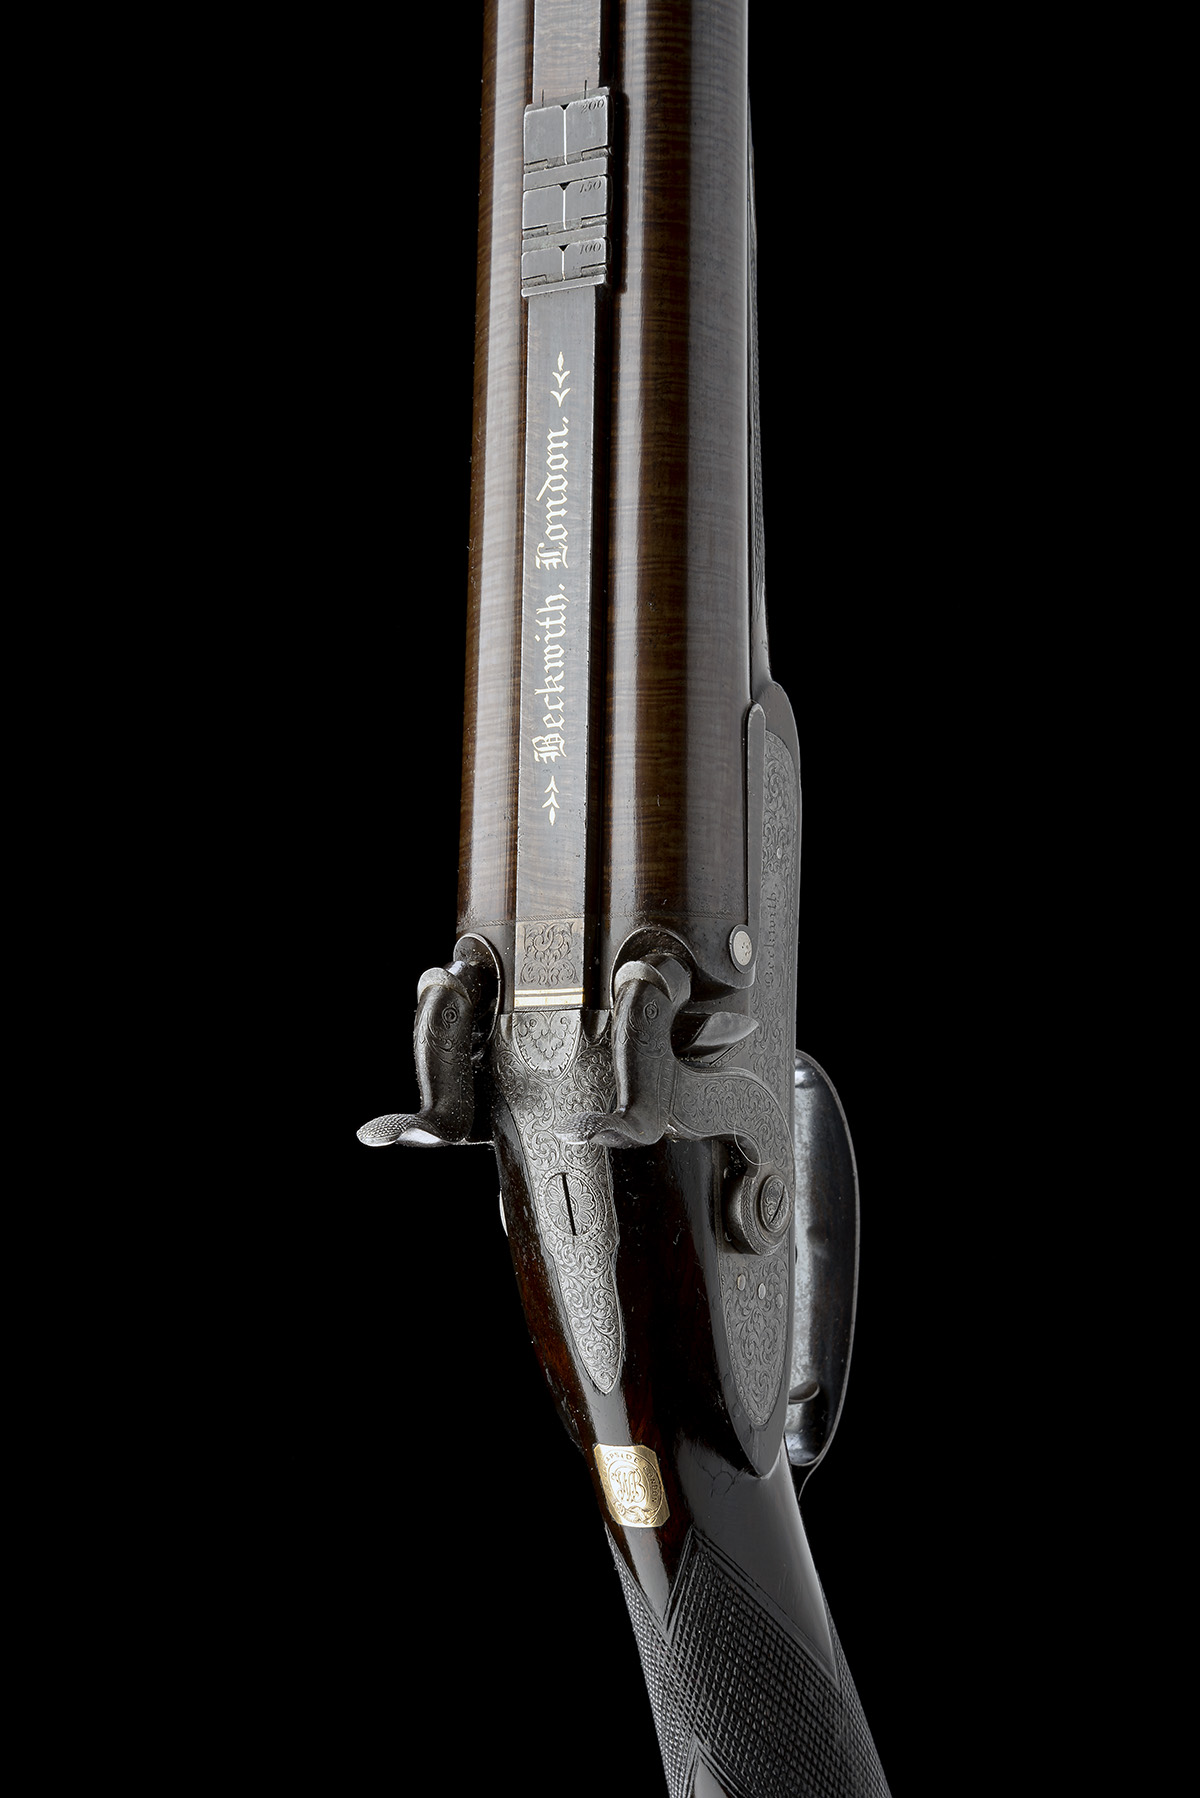 BECKWITH, LONDON A FINE CASED 15-BORE PERCUSSION DOUBLE-RIFLE FOR DANGEROUS GAME, serial no. 2747, - Image 4 of 14